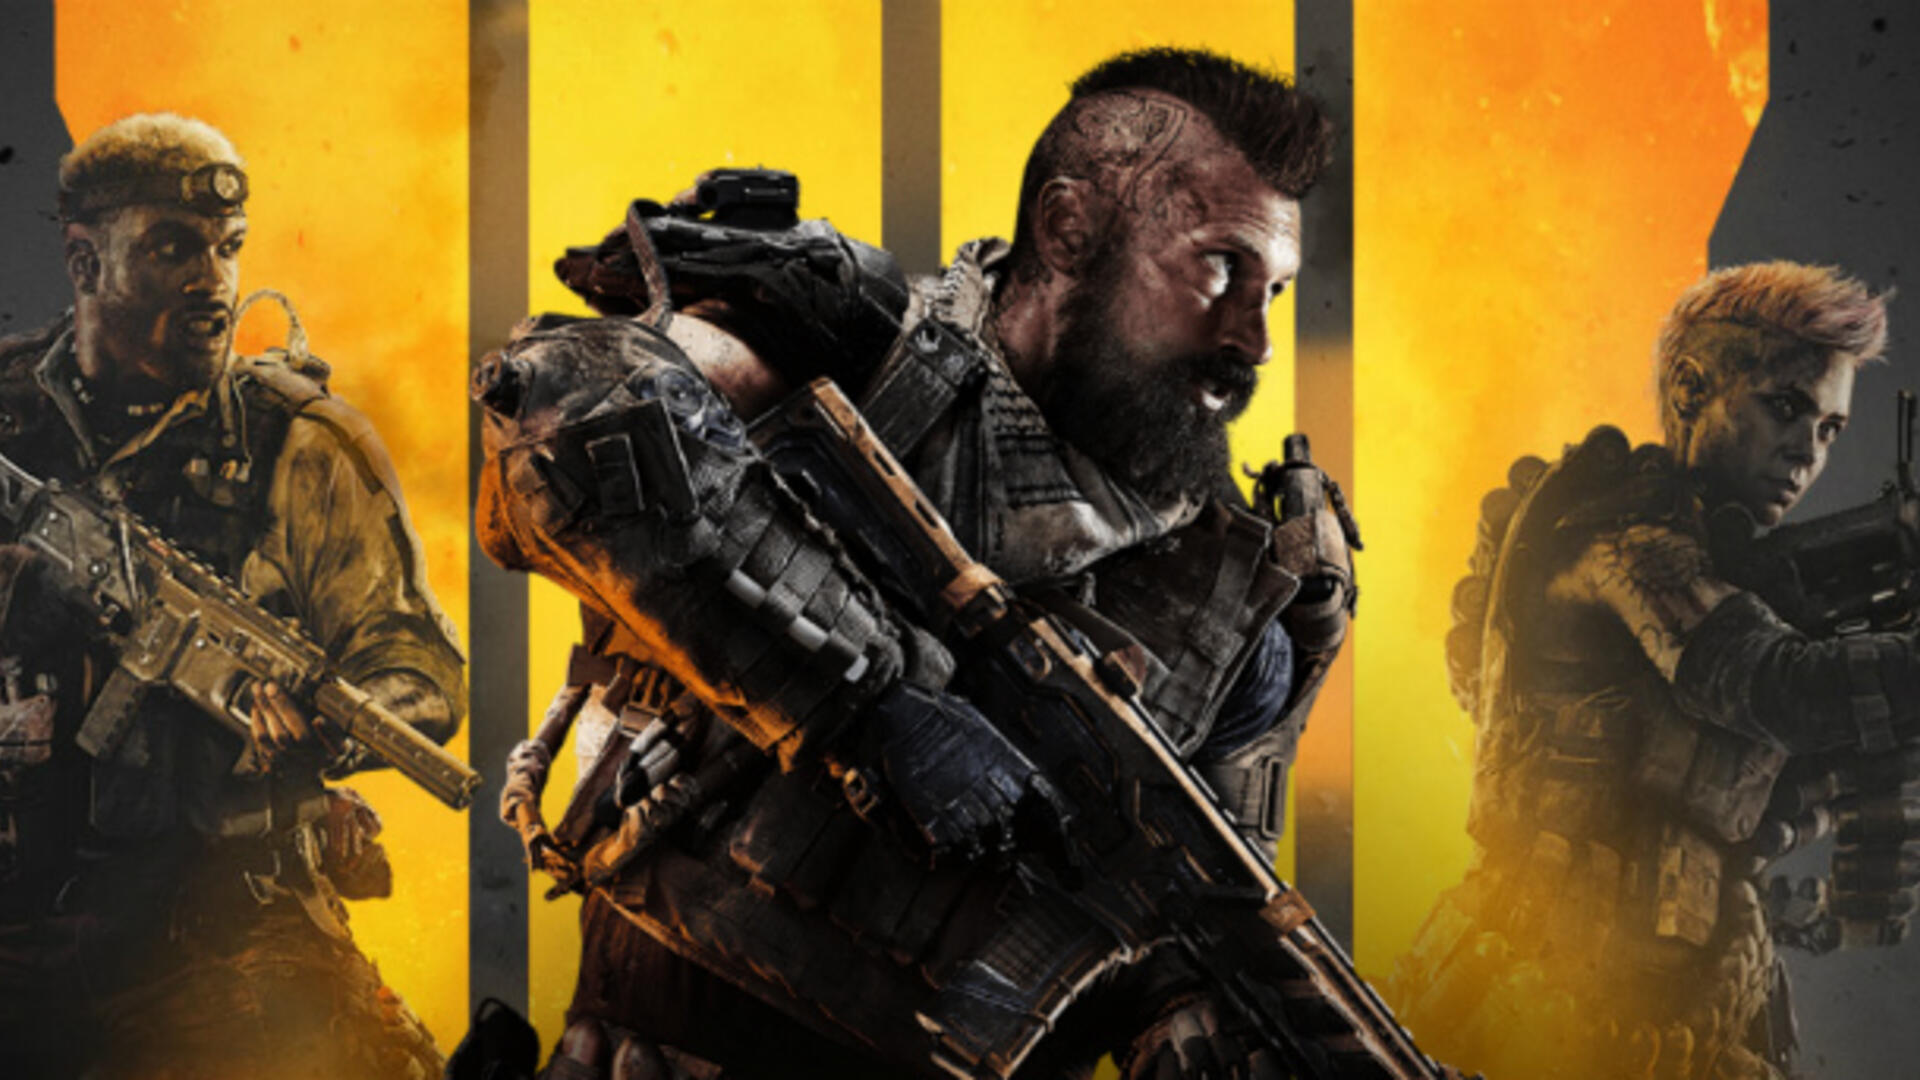 Call of Duty Black Ops 4 Down to £34/$38 - Best Black Friday Price